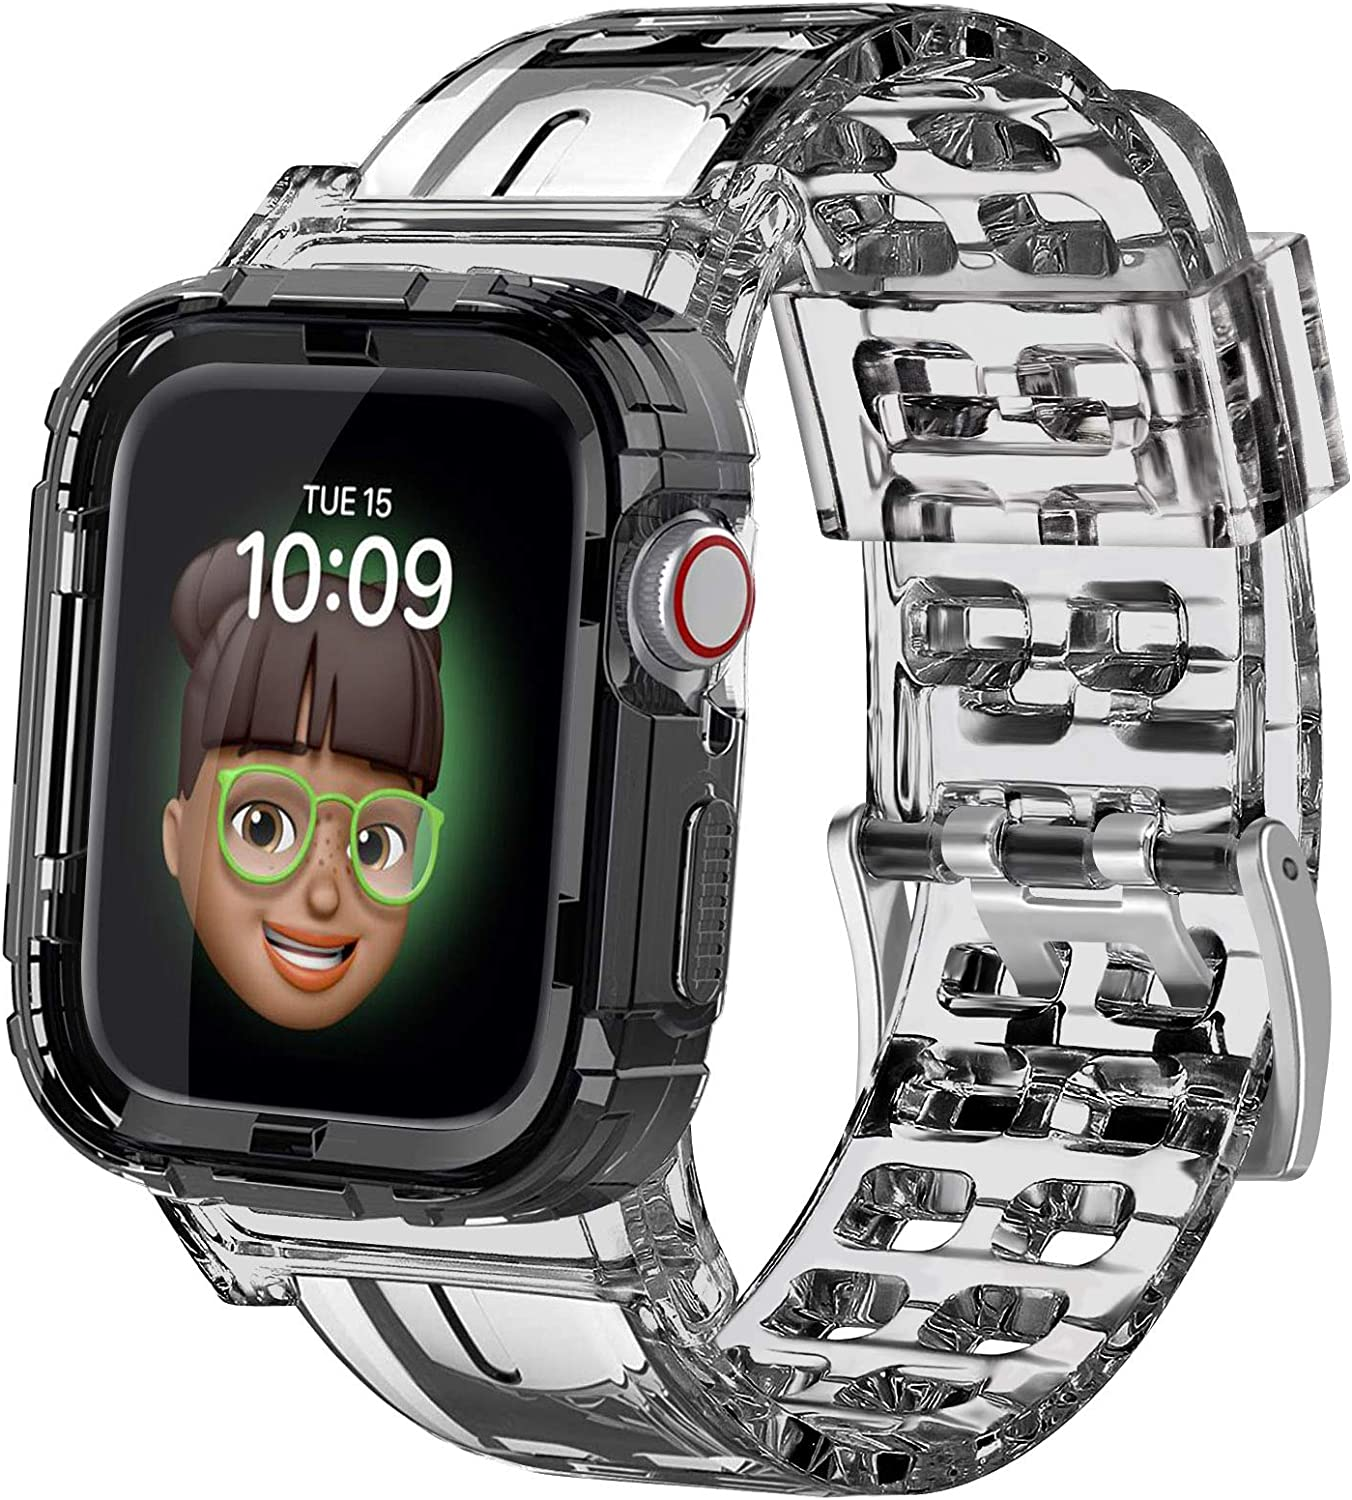 Amzpas Band with Bumper Case Compatible with Apple Watch Band 38mm 40mm 44mm 42mm, Soft Crystal Shockproof Impact Resistant Strap Compatible for Apple Watch SE & 6 5 4 3 2